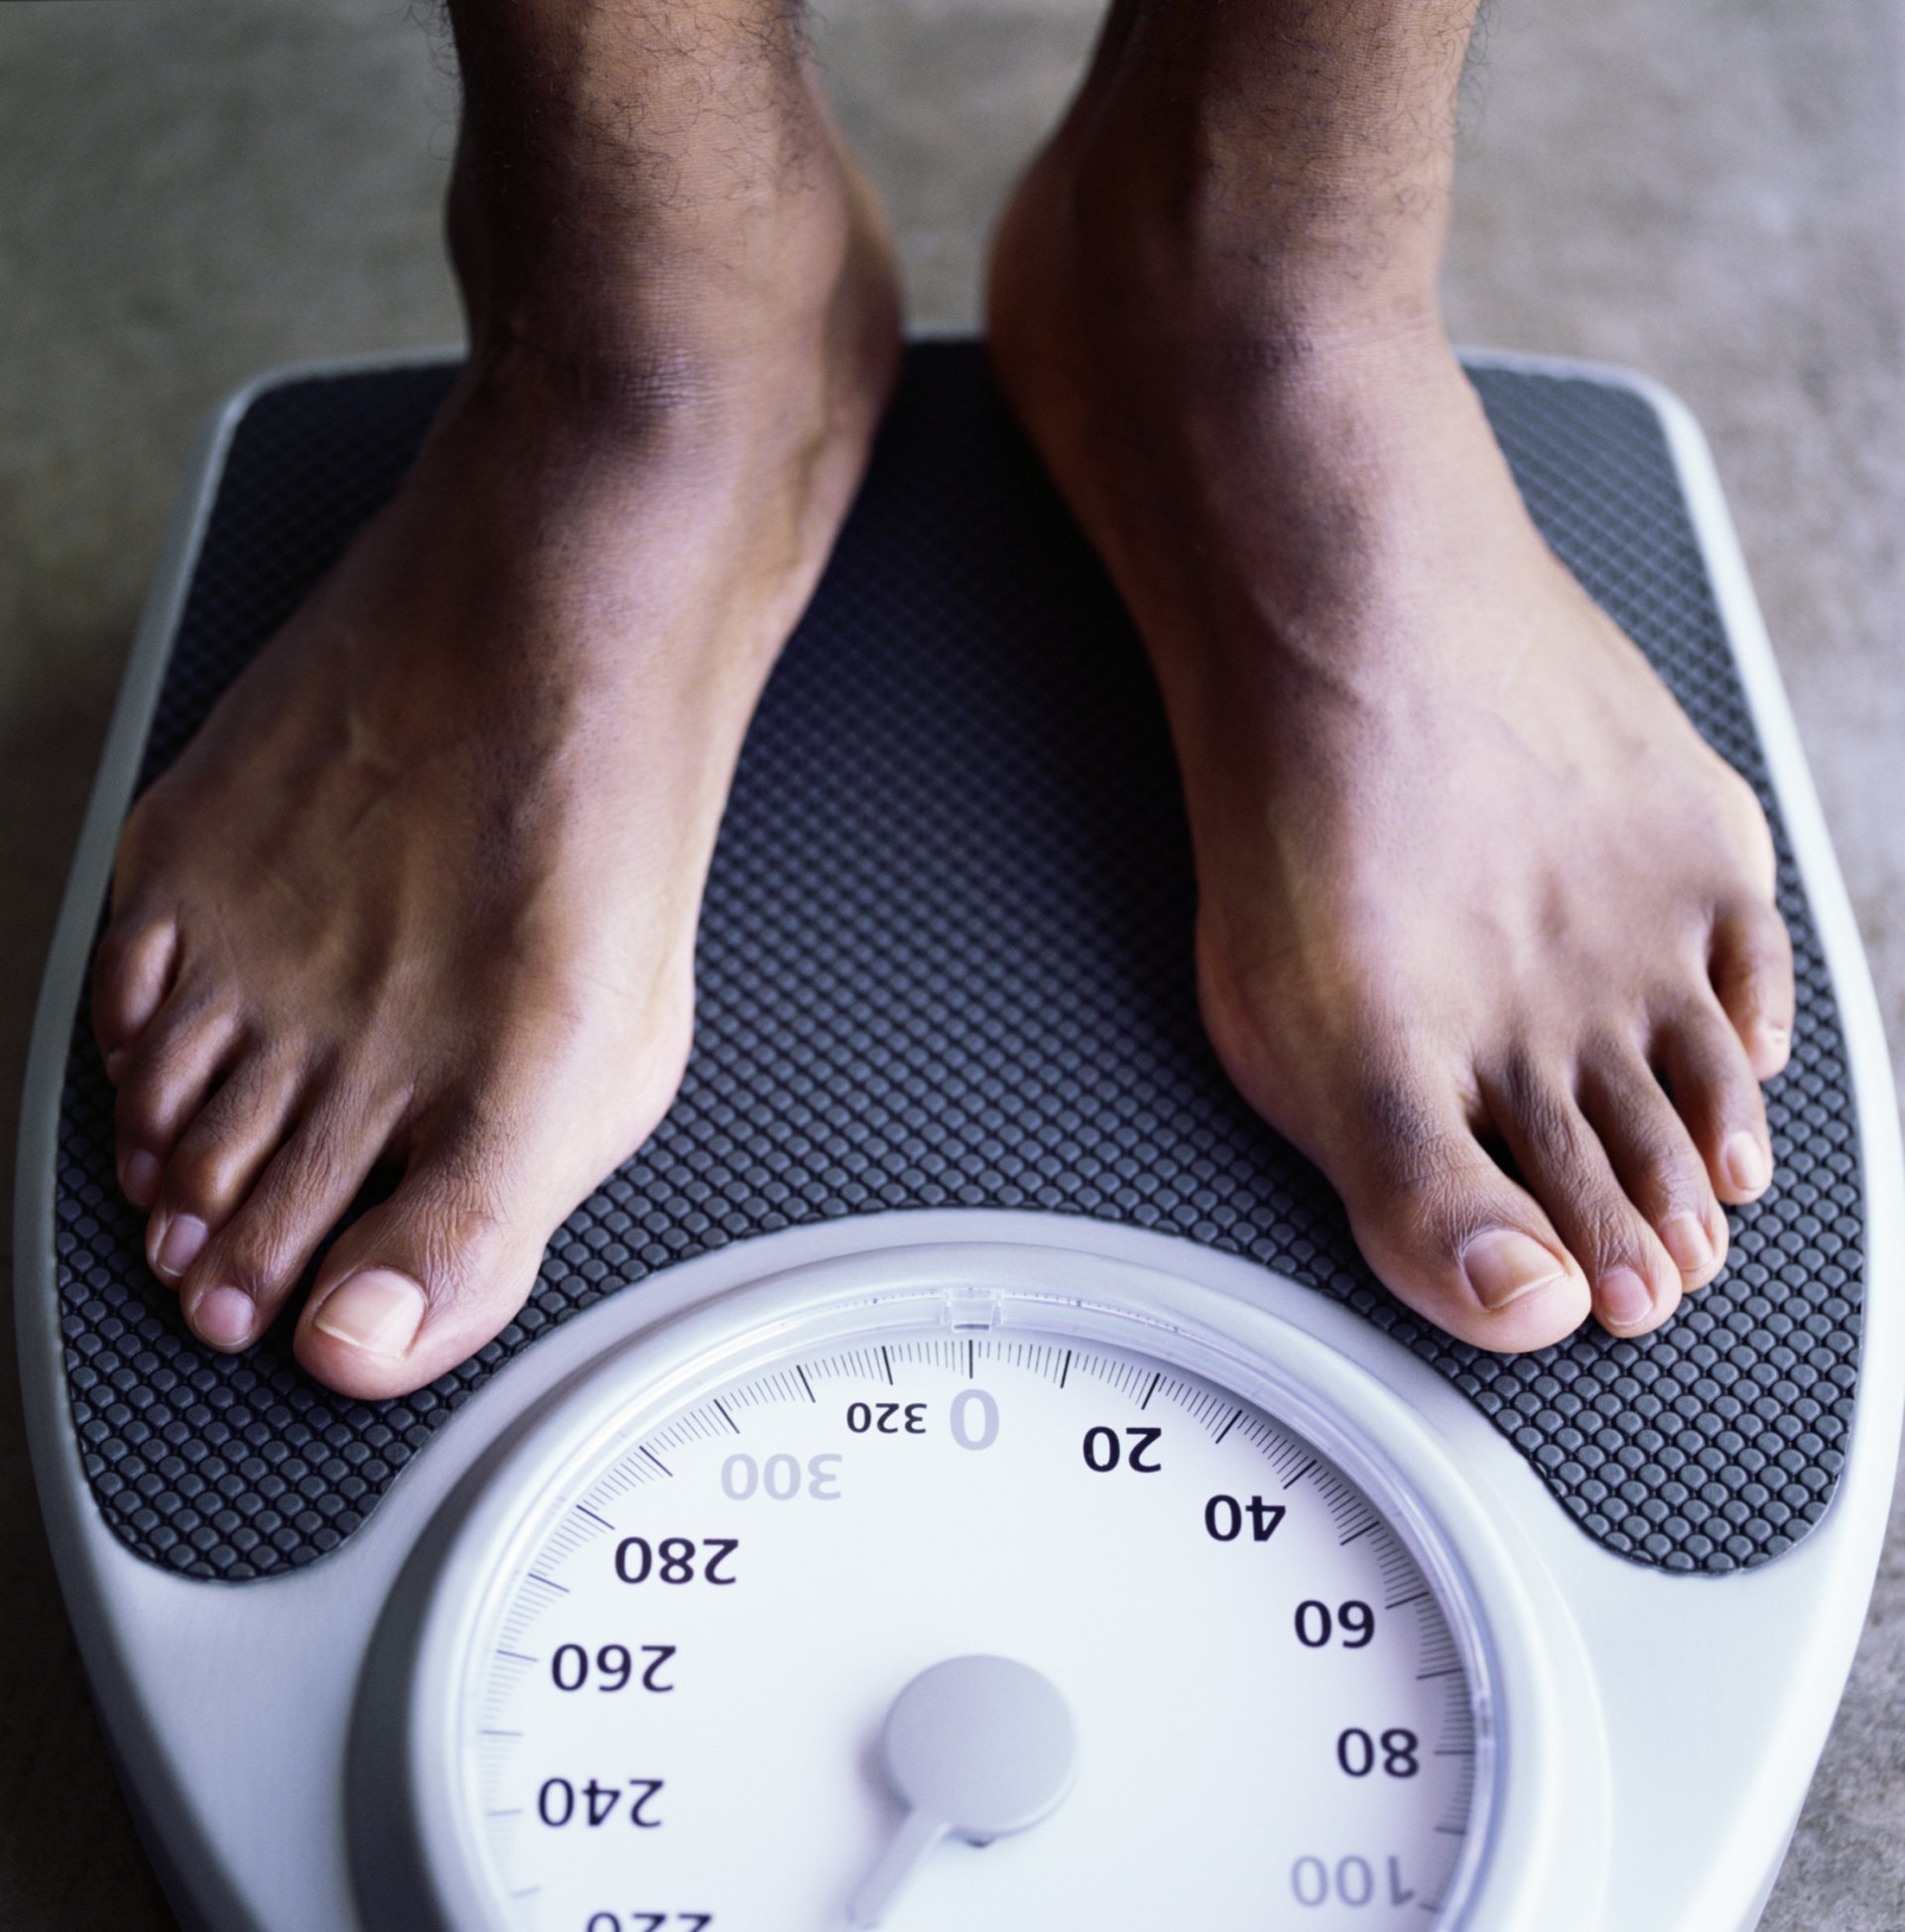 Is There an Ideal Weight for a Man of 5 Feet, 7 Inches? | LIVESTRONG.COM